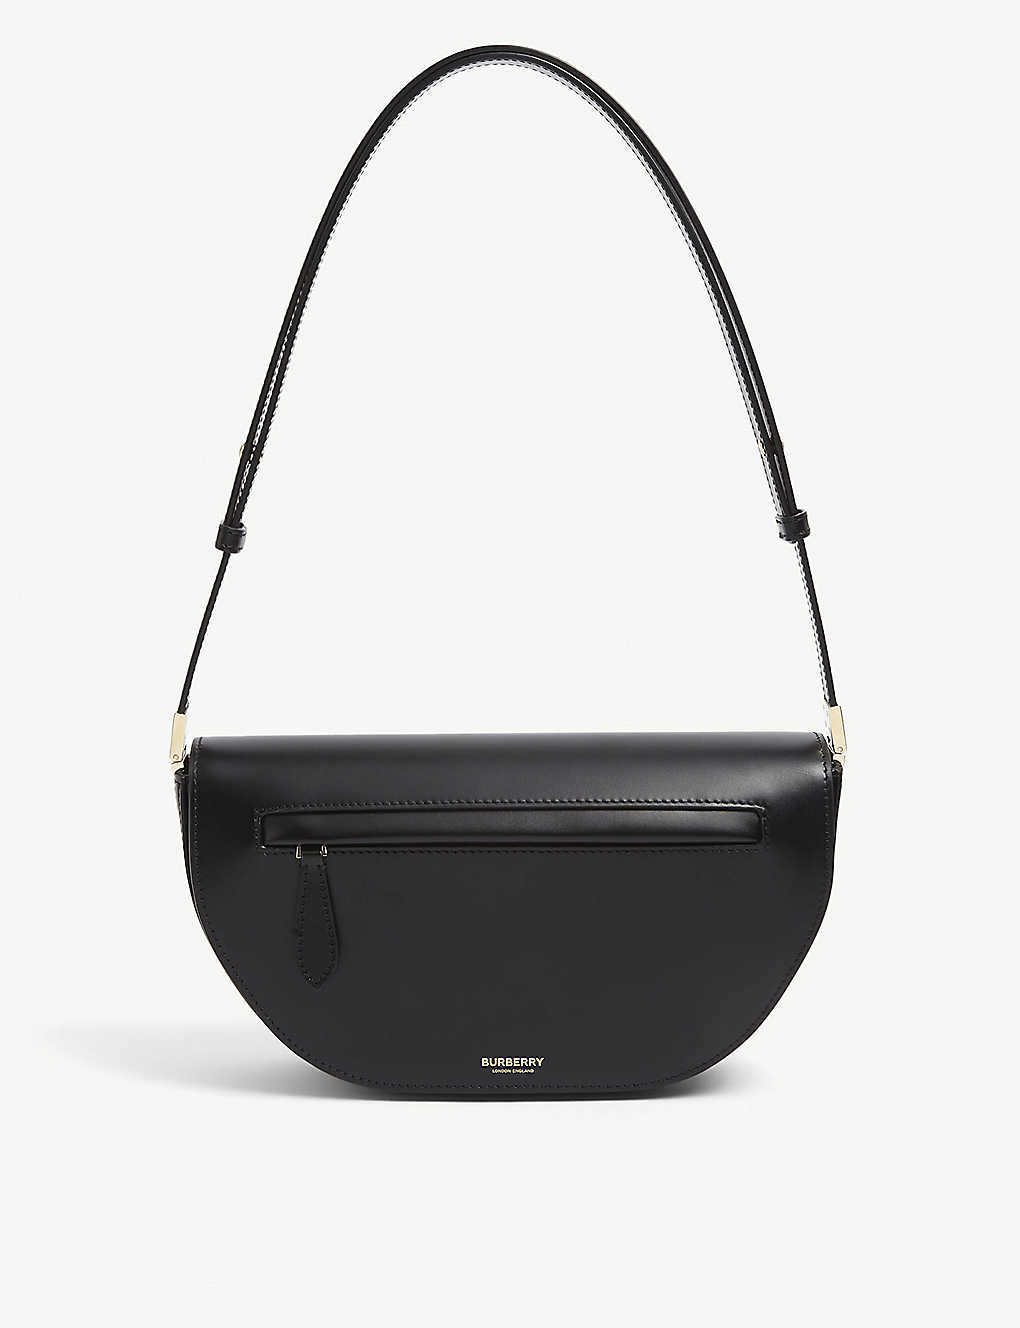 BURBERRY: Olympia small leather shoulder bag